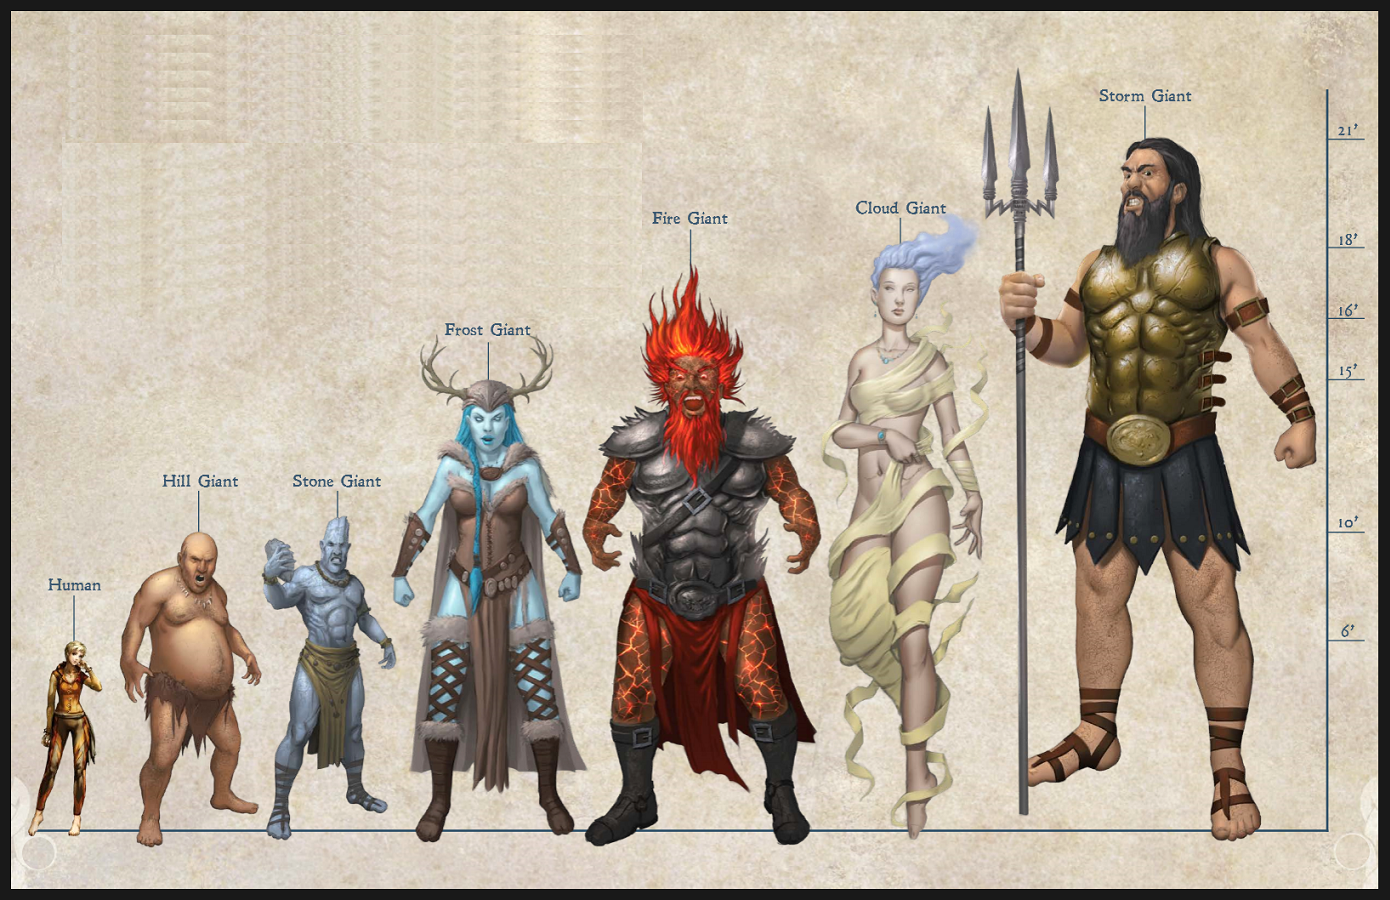 Pathfinder giant size comparison chart pfrpg dnd   th  ed fantasy  rpg character art pics also rh pinterest